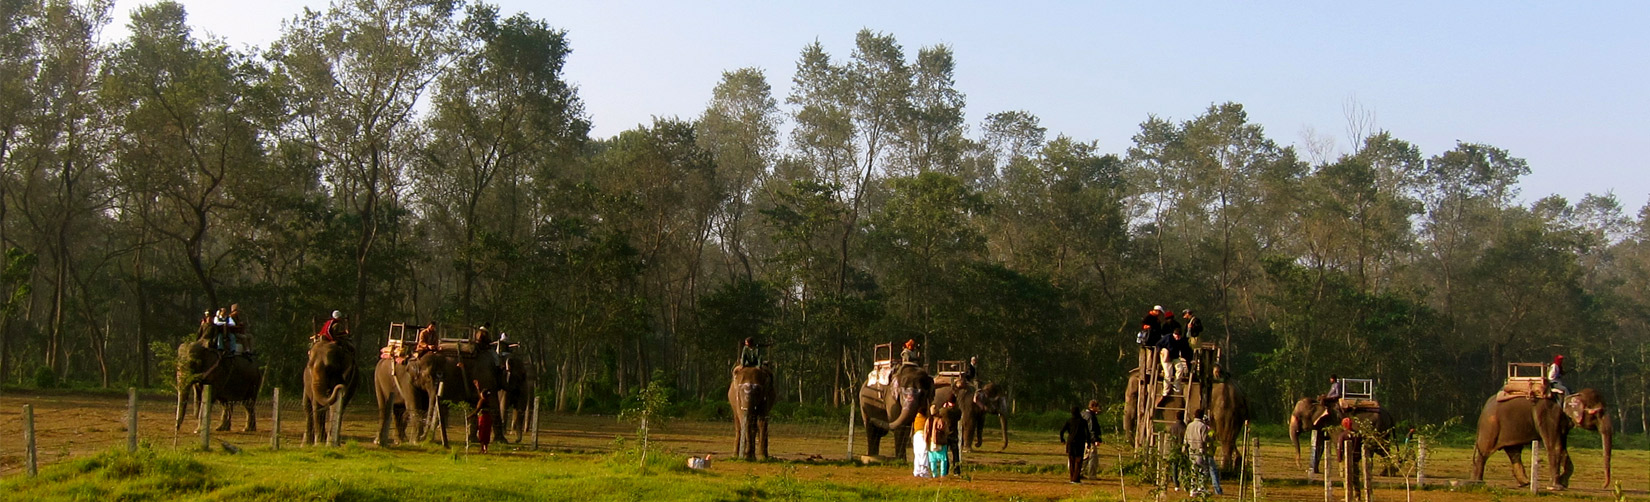 Jungle Safari at Sauraha in Chitwan